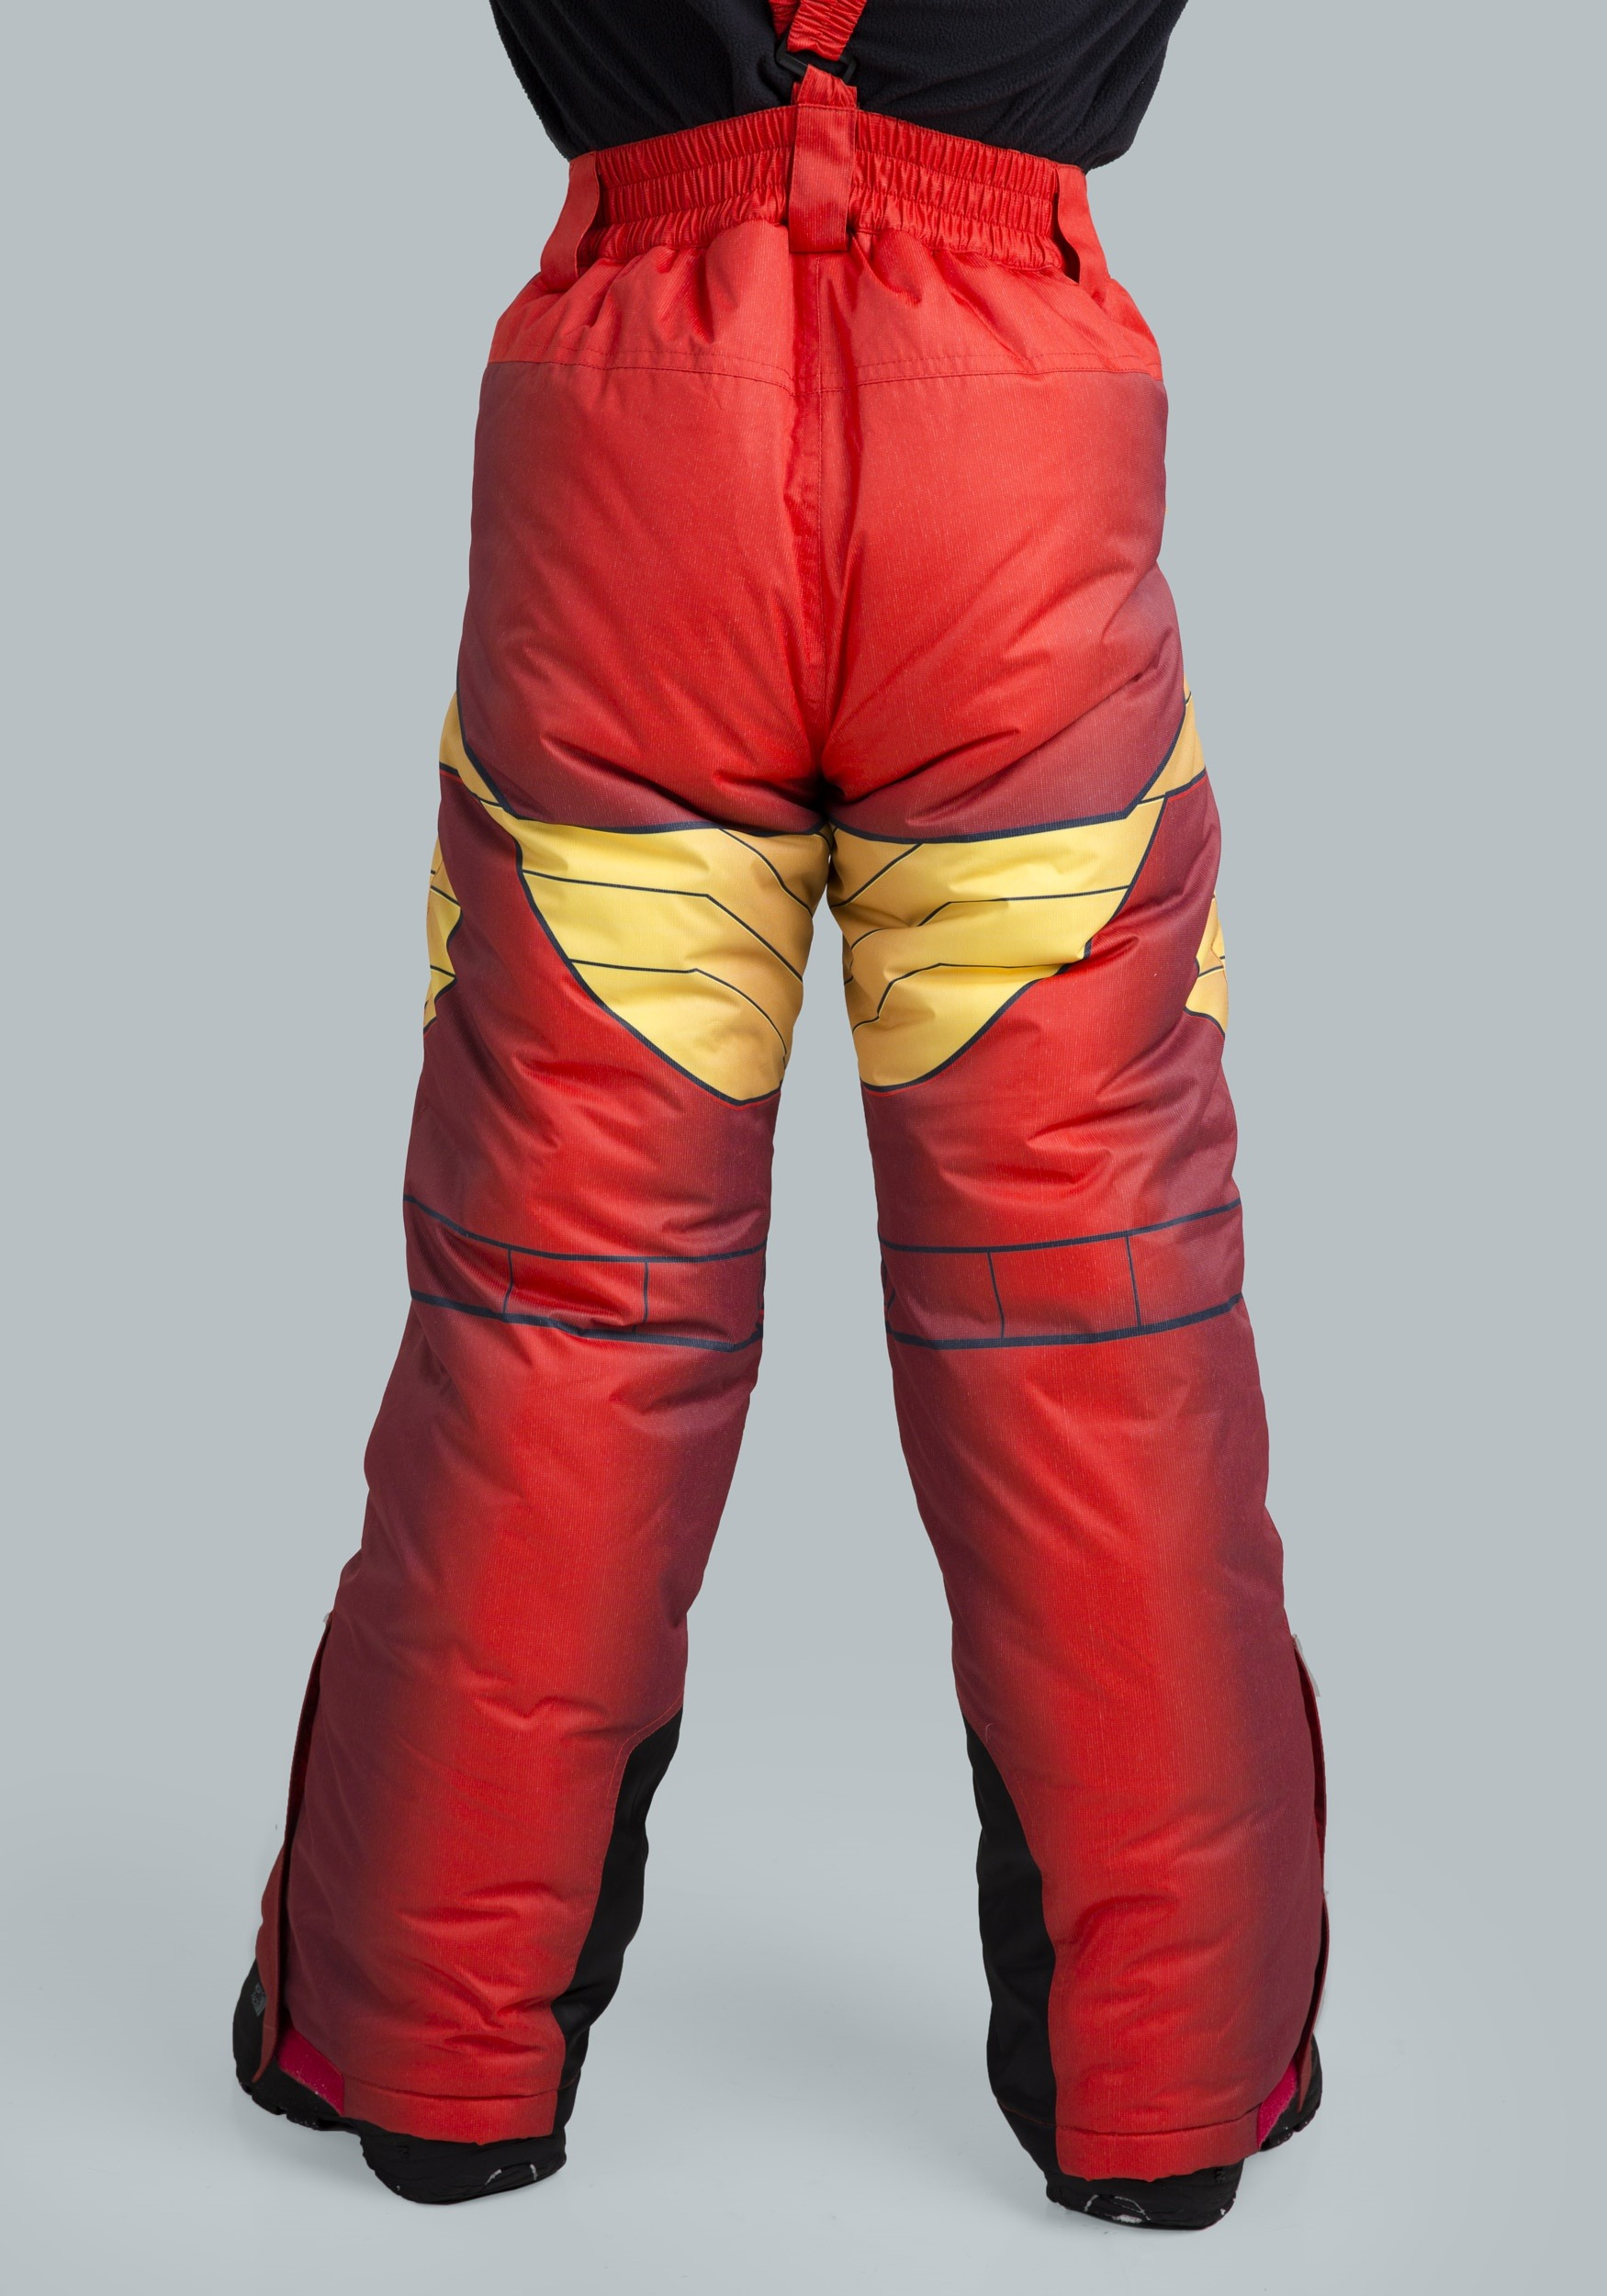 Find pants that match his budding sense of style, and discover technical boys' snow pants from some of the top brands in outerwear like Columbia® and Obermeyer®. For more, browse all snow pants & bibs from DICK'S Sporting Goods.